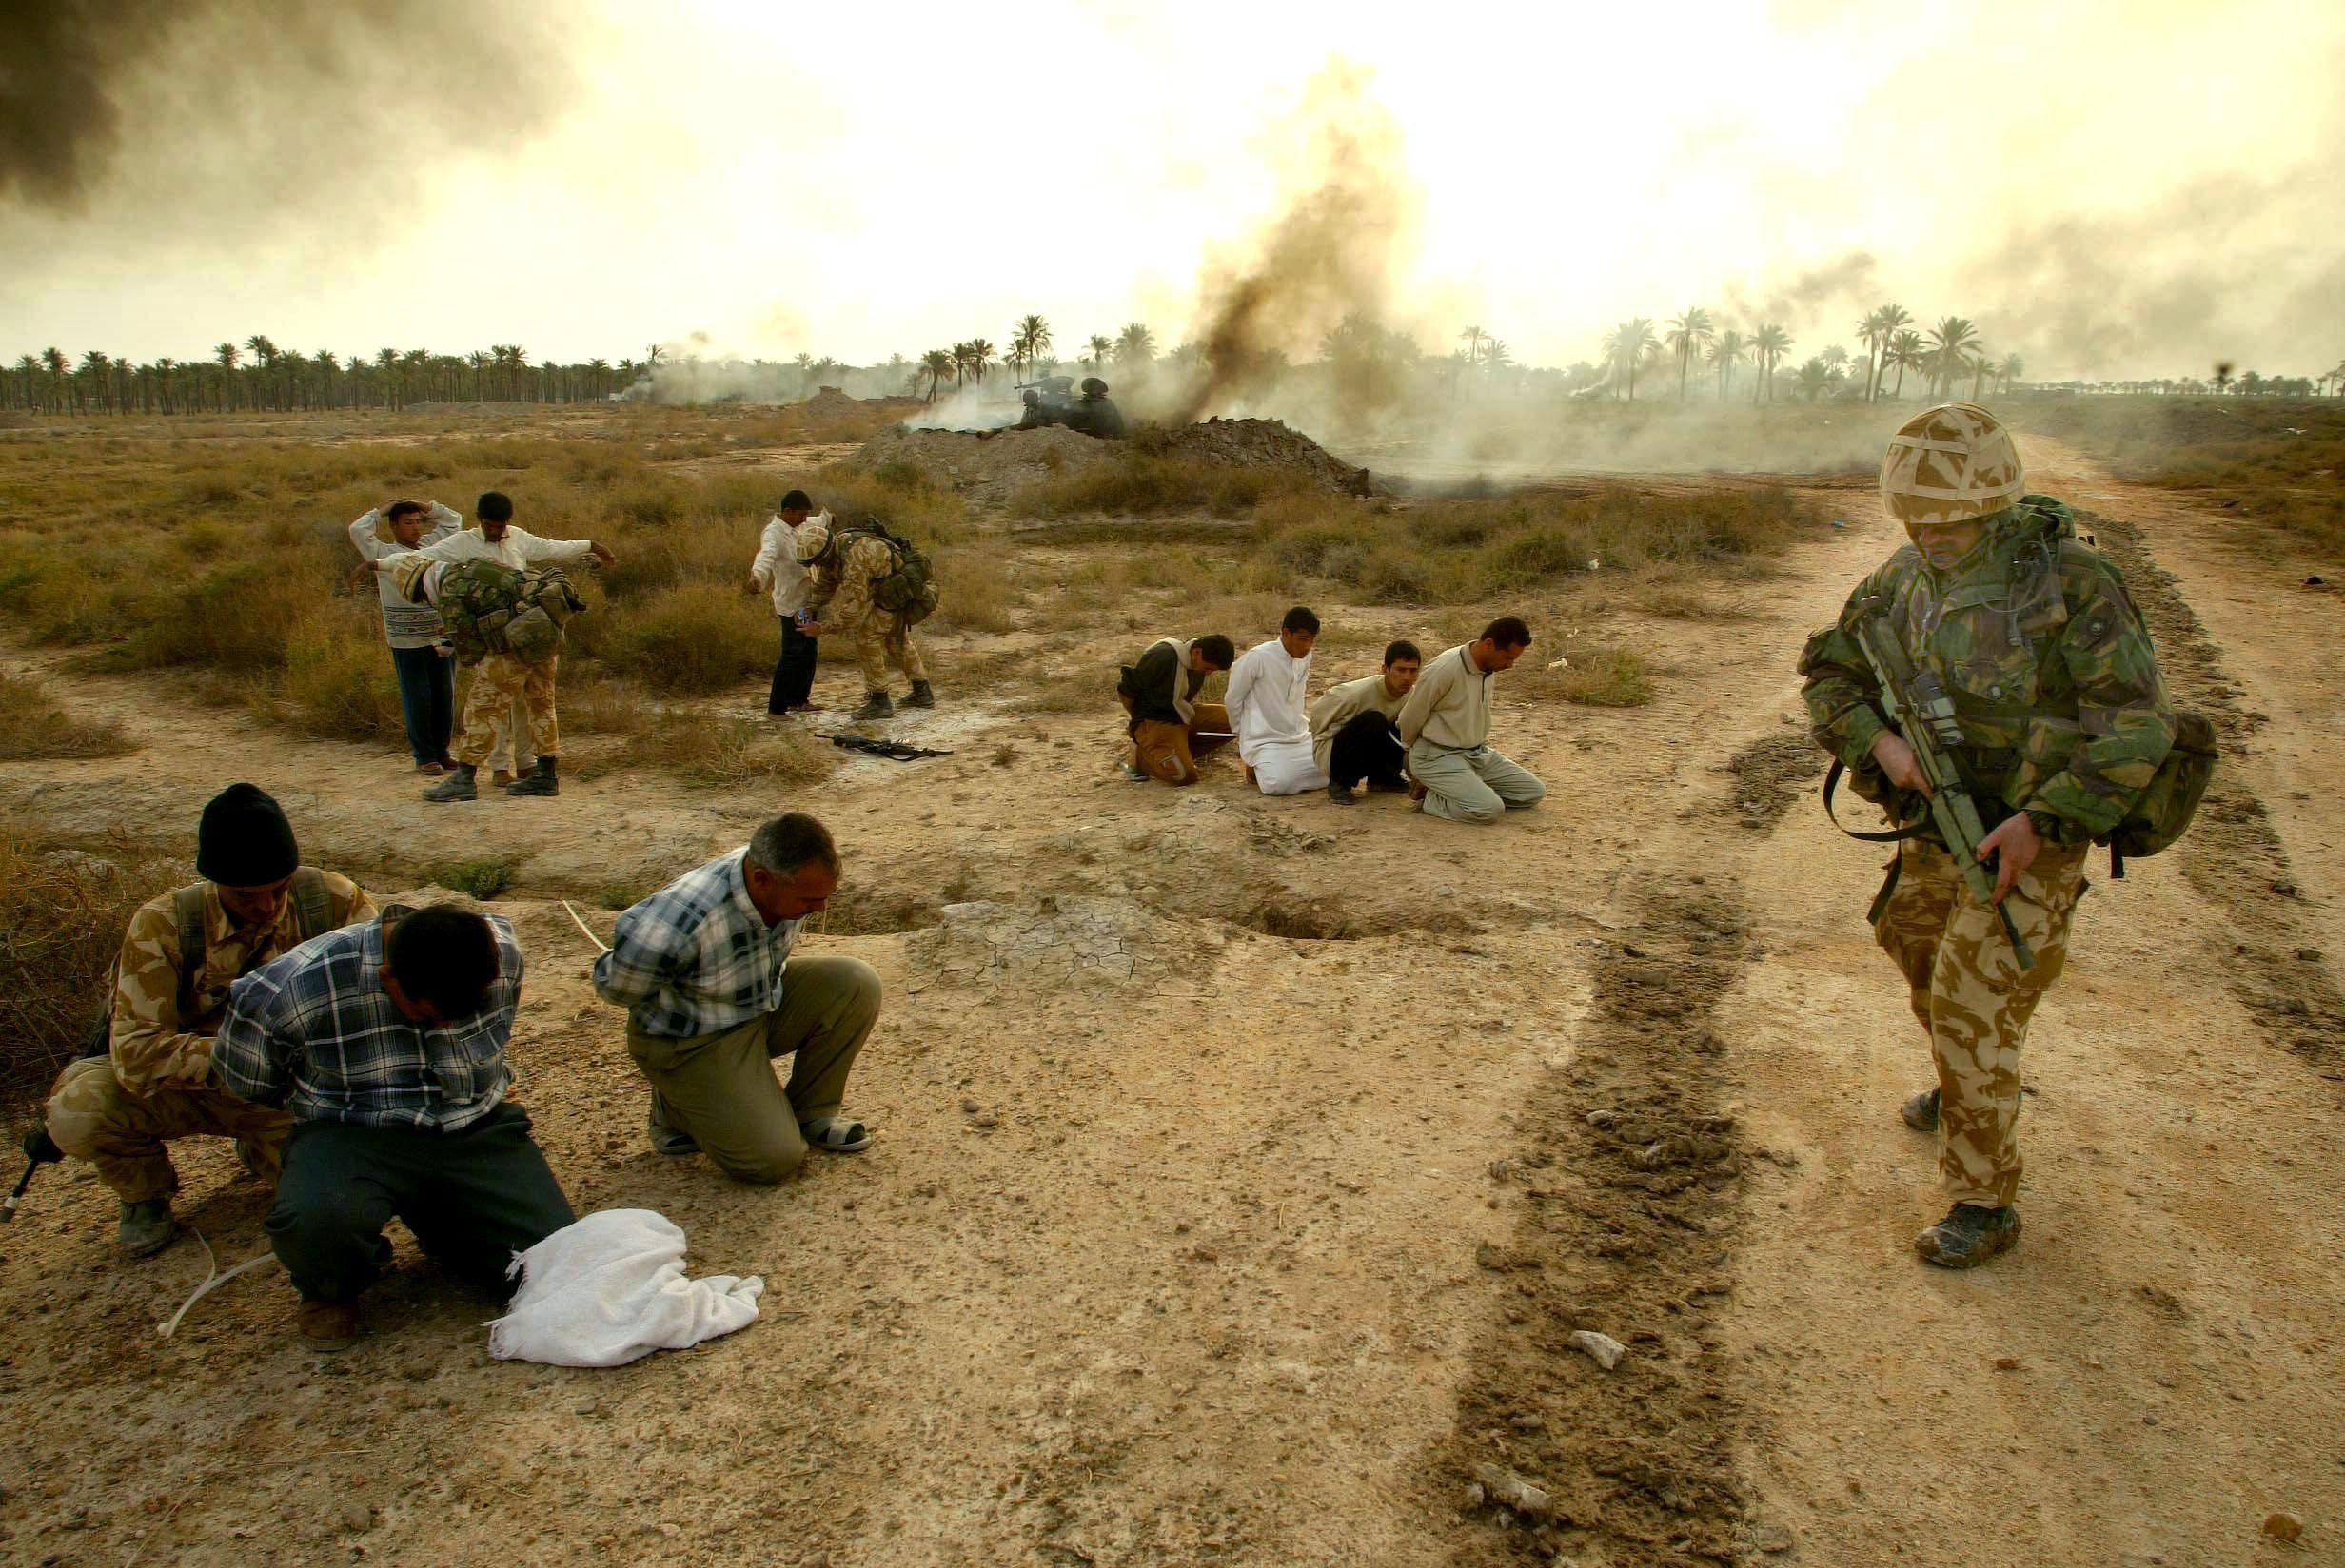 http://s.newsweek.com/sites/www.newsweek.com/files/styles/feature/public/2014/12/16/iraqi-militia-surrender-royal-marines.jpg